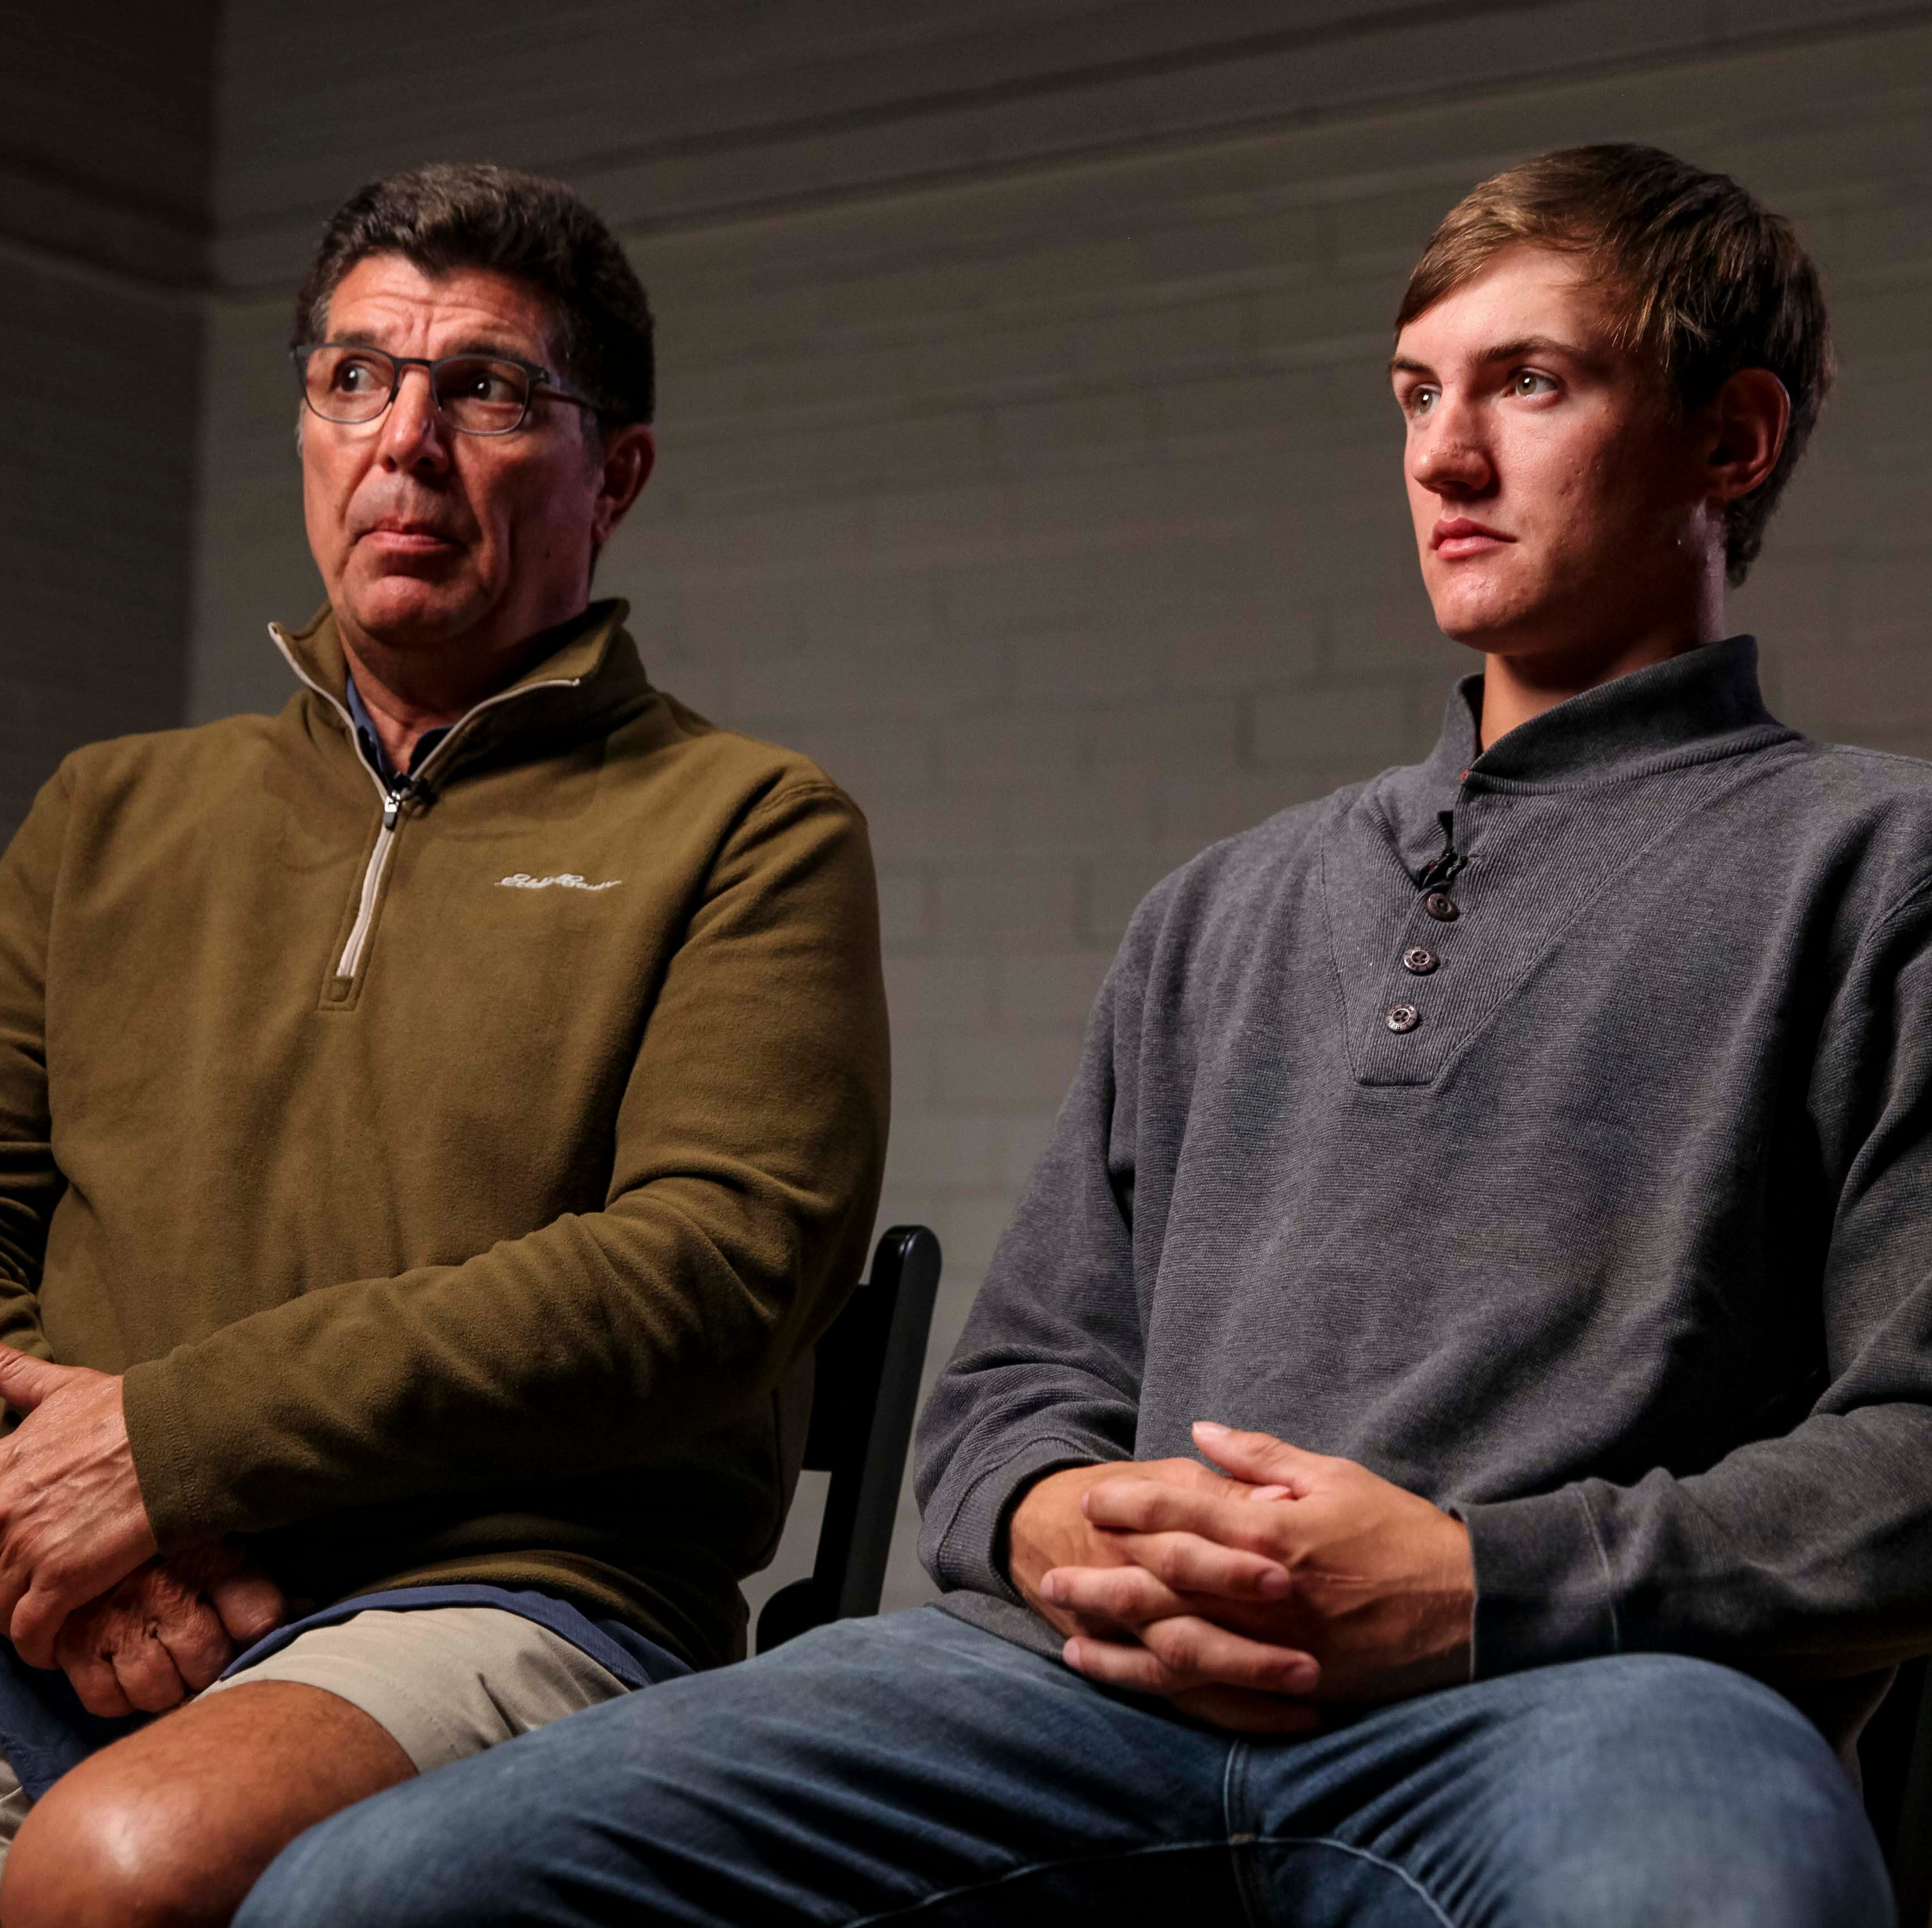 A month after Mollie Tibbetts disappeared, her father thanks an Iowa community for its compassion